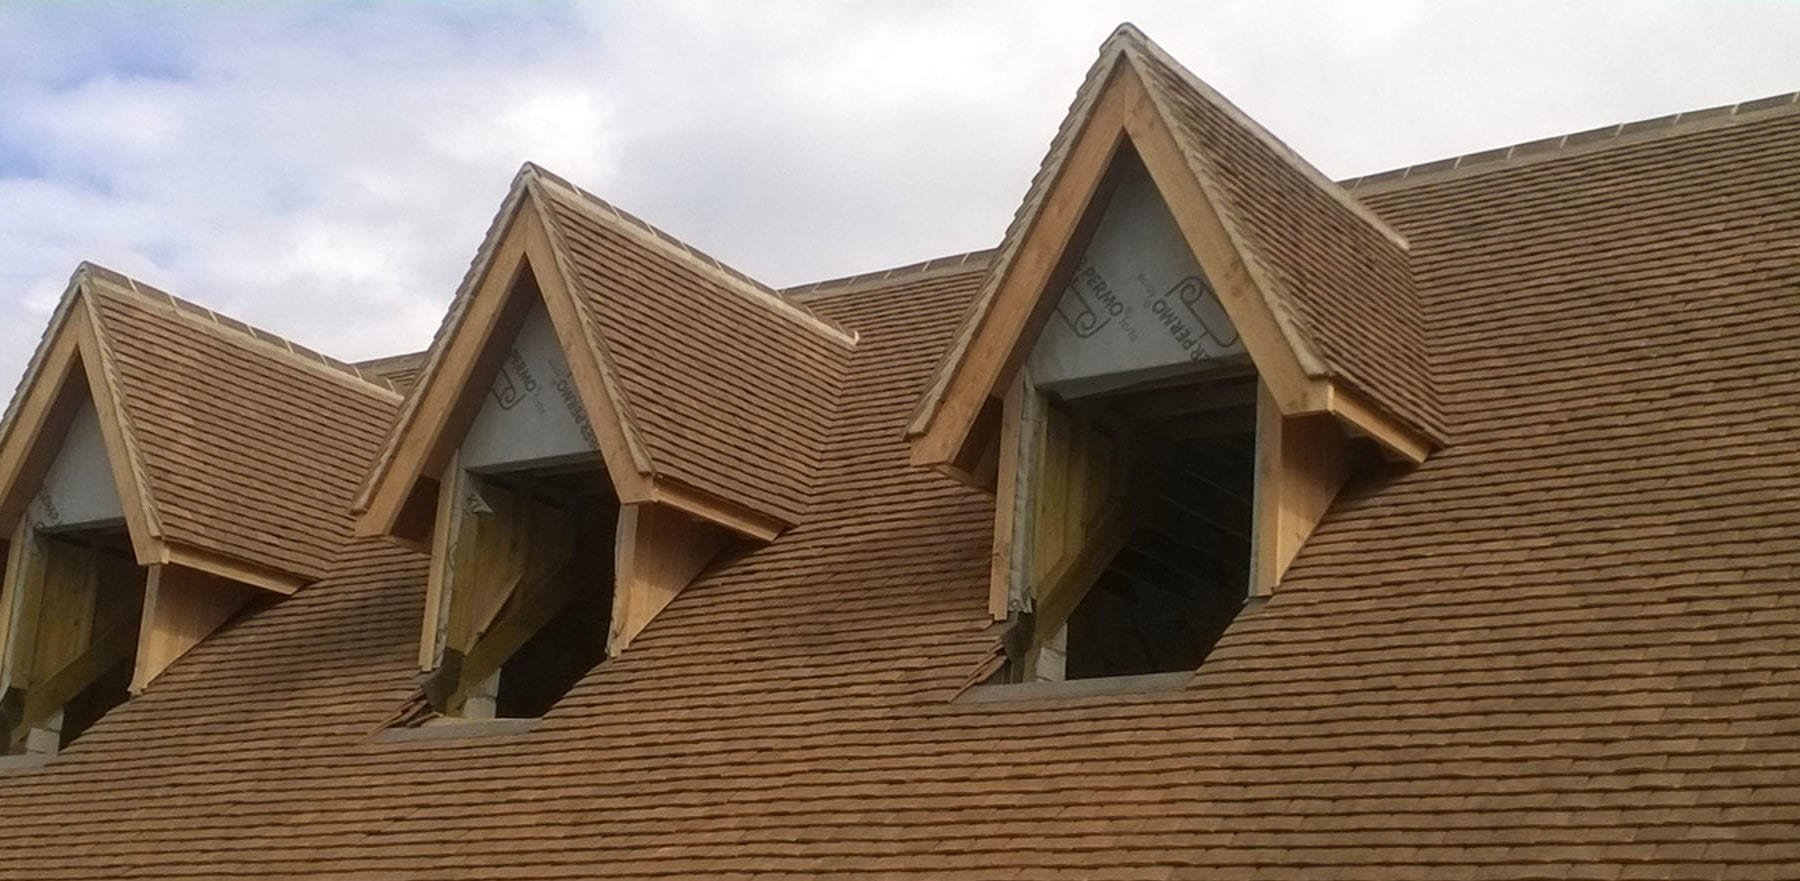 Lifestiles - Handcrafted Foxearth Clay Roof Tiles - Oxford, England